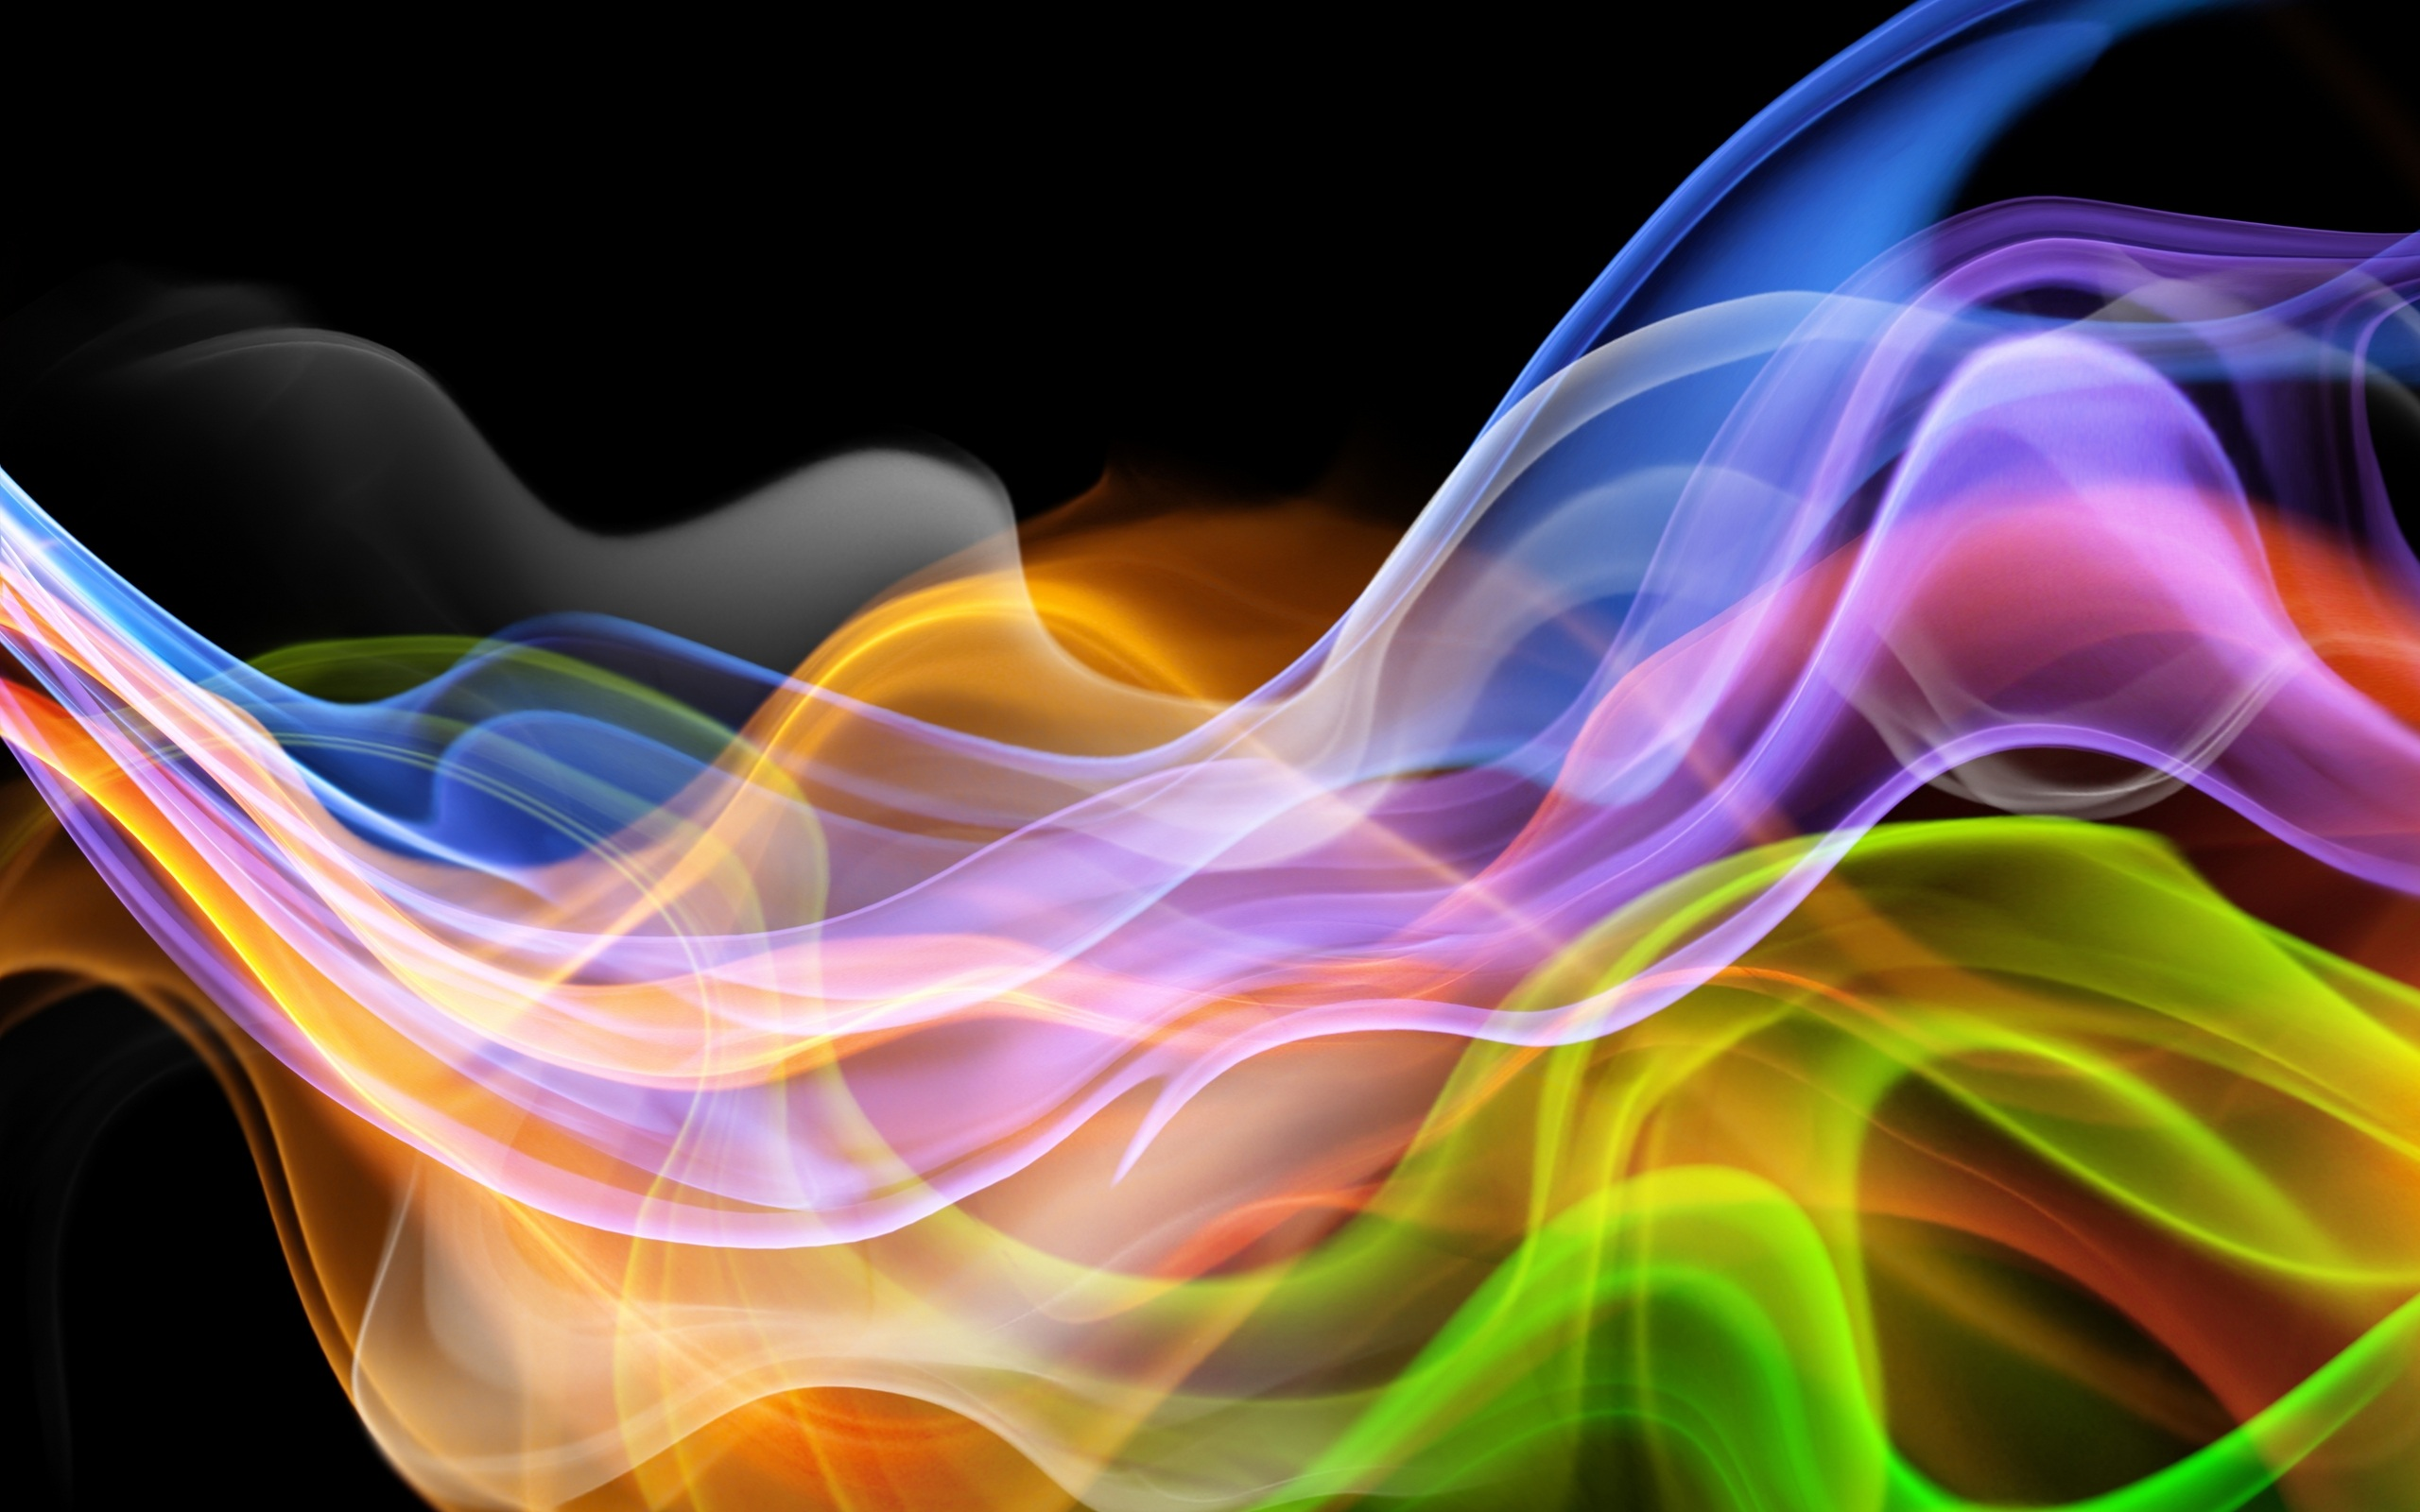 Wallpaper Abstract Colorful Curve Background 2560x1600 Hd